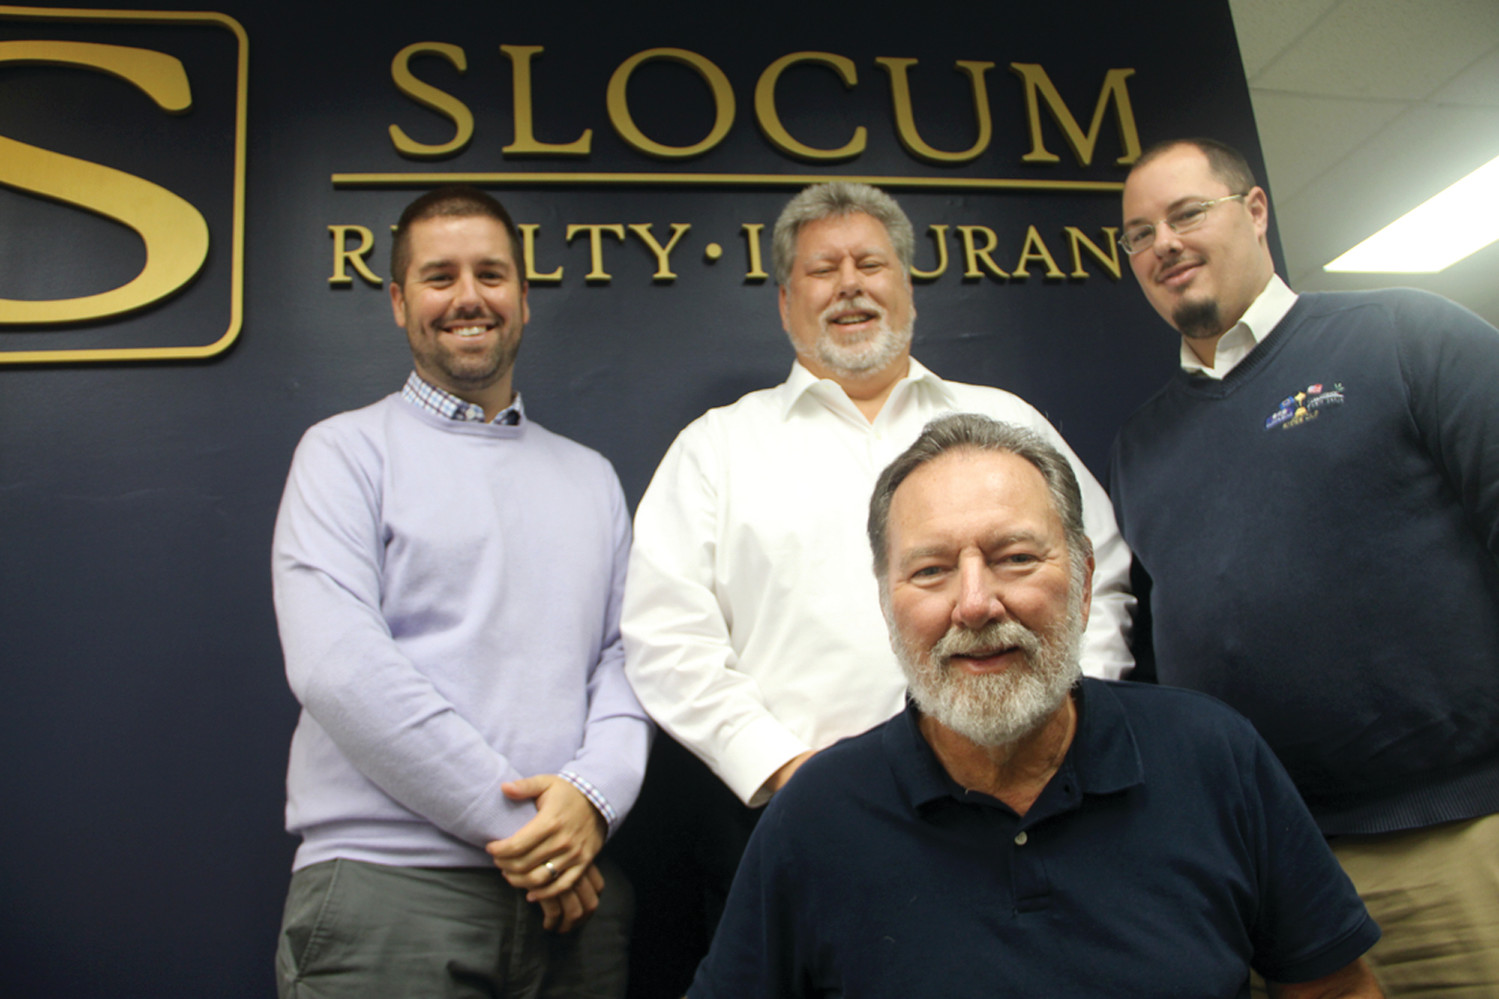 THE SLOCUM TEAM: Looking to further grow The Slocum Agency Inc., Slocum Real Estate has moved to a 5,000-square-foot office building at 333 Centerville Road. From left are Nick Slocum, his father Phil Slocum, Phil's brother Bob Slocum and his son, Christopher.